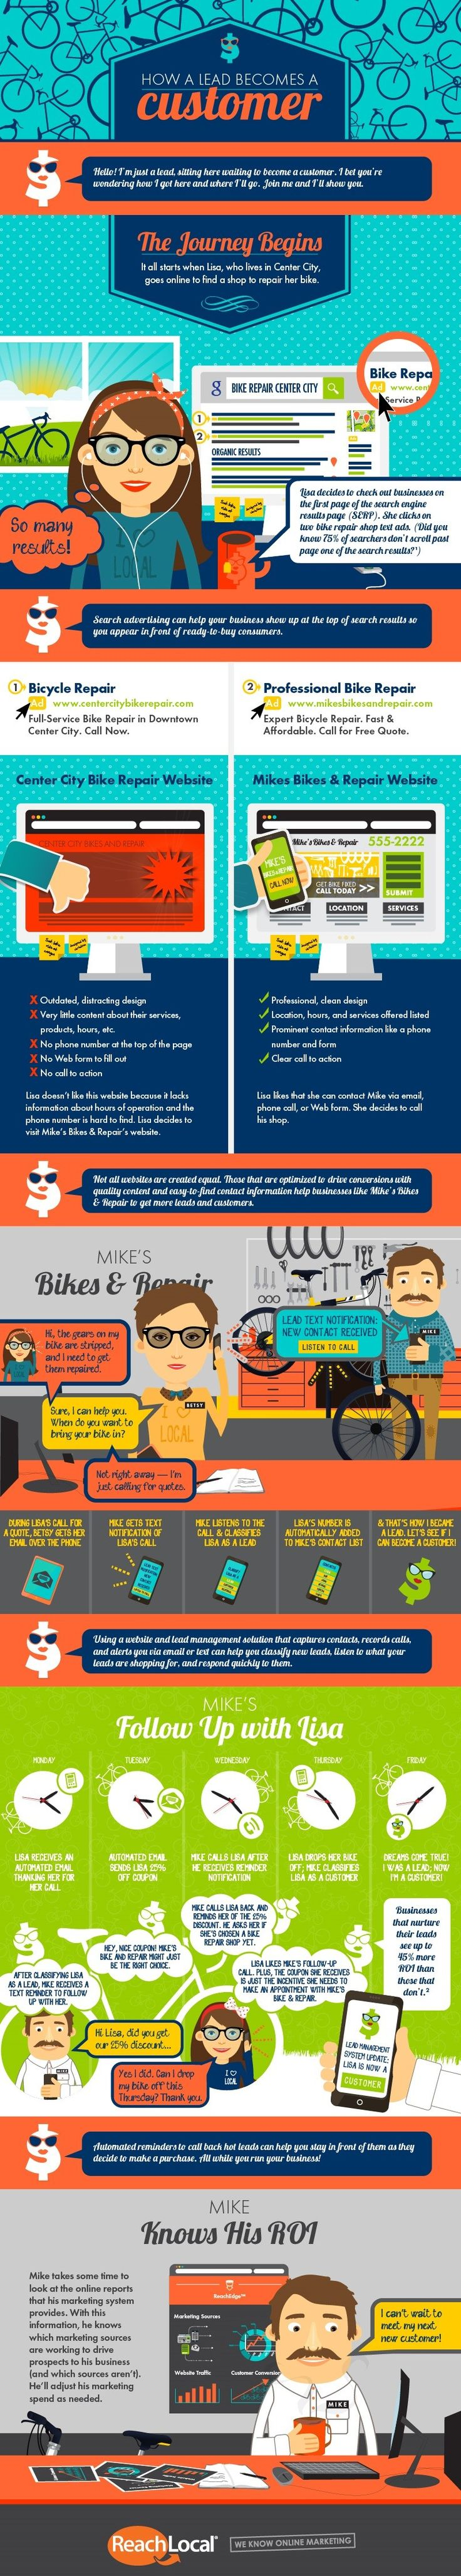 Sales - How a Lead Becomes a Customer [Infographic] : MarketingProfs Article